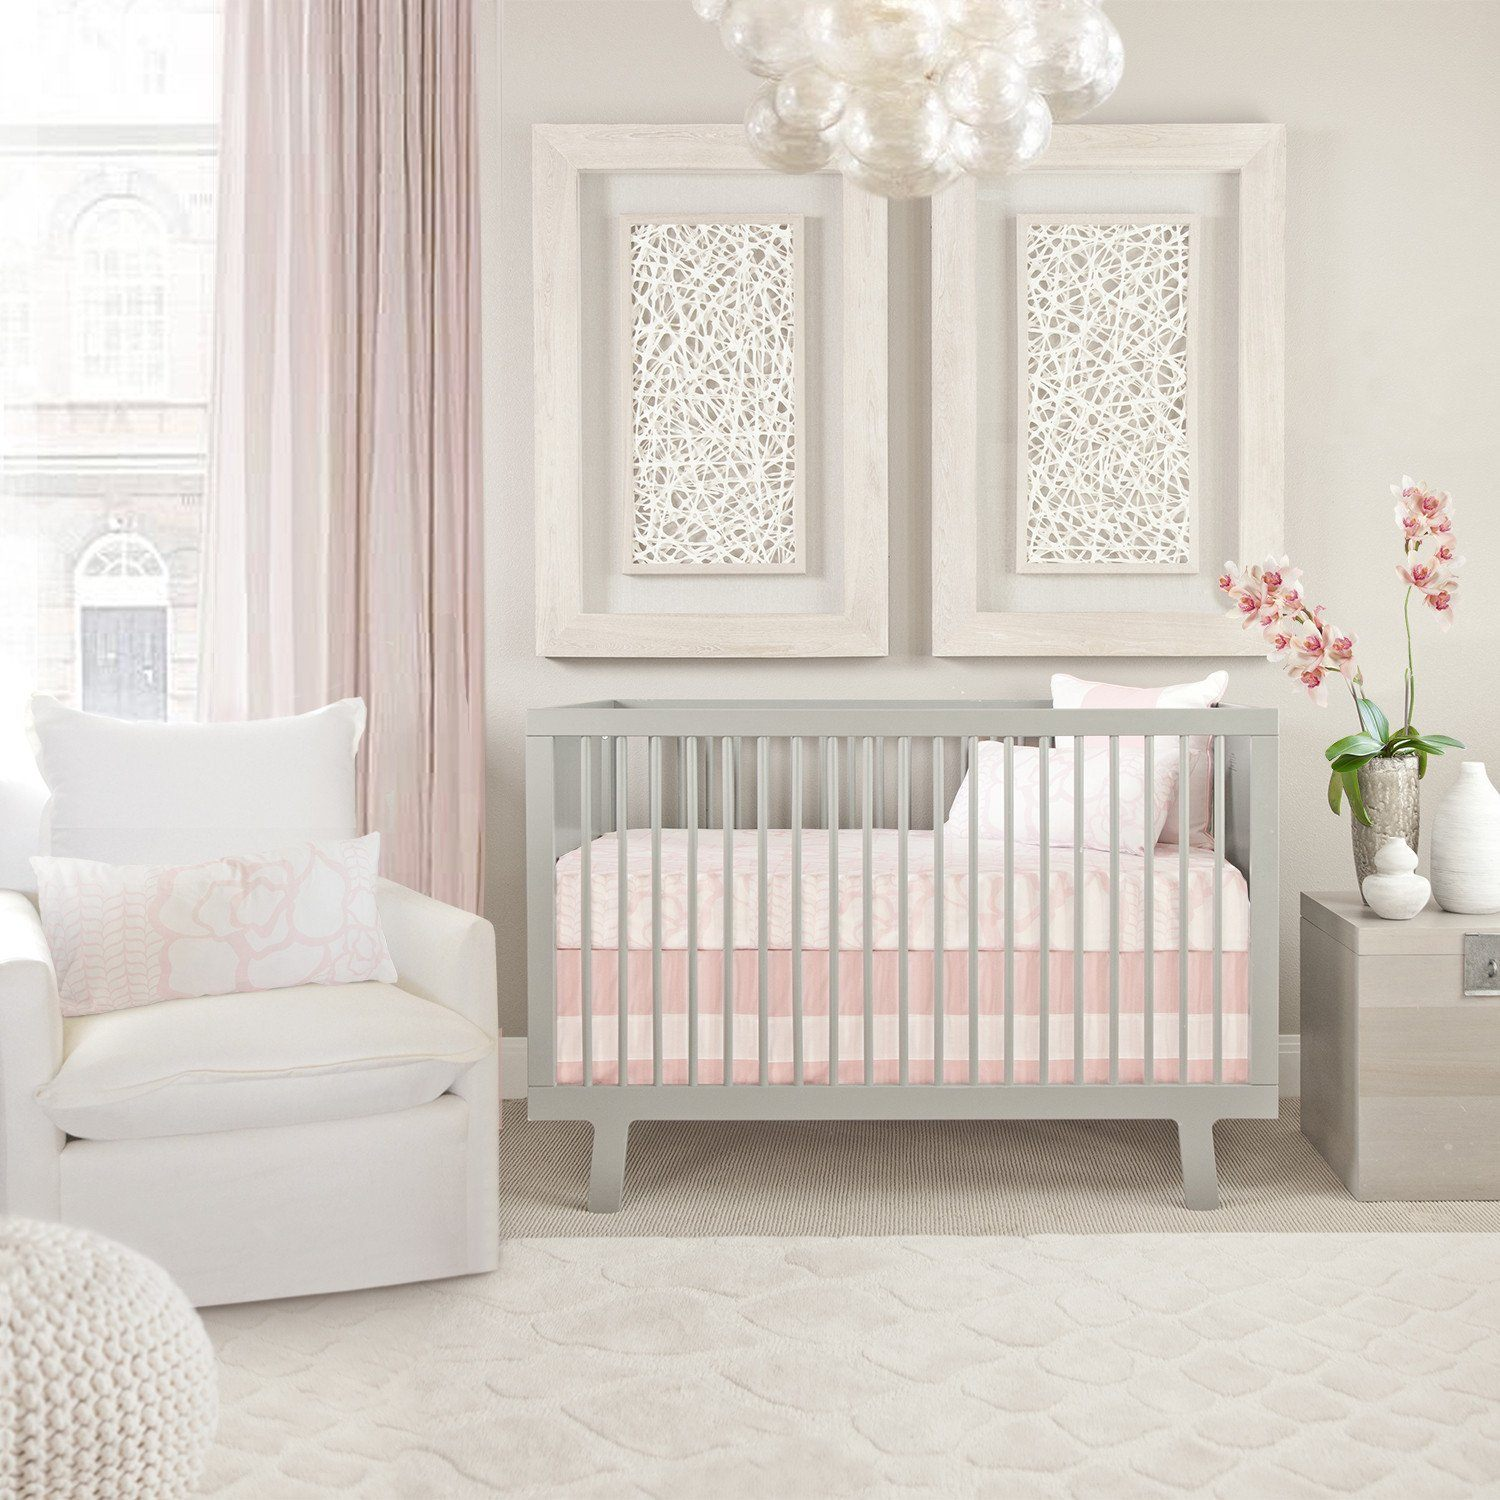 Capri Jersey Crib Sheet - Project Nursery